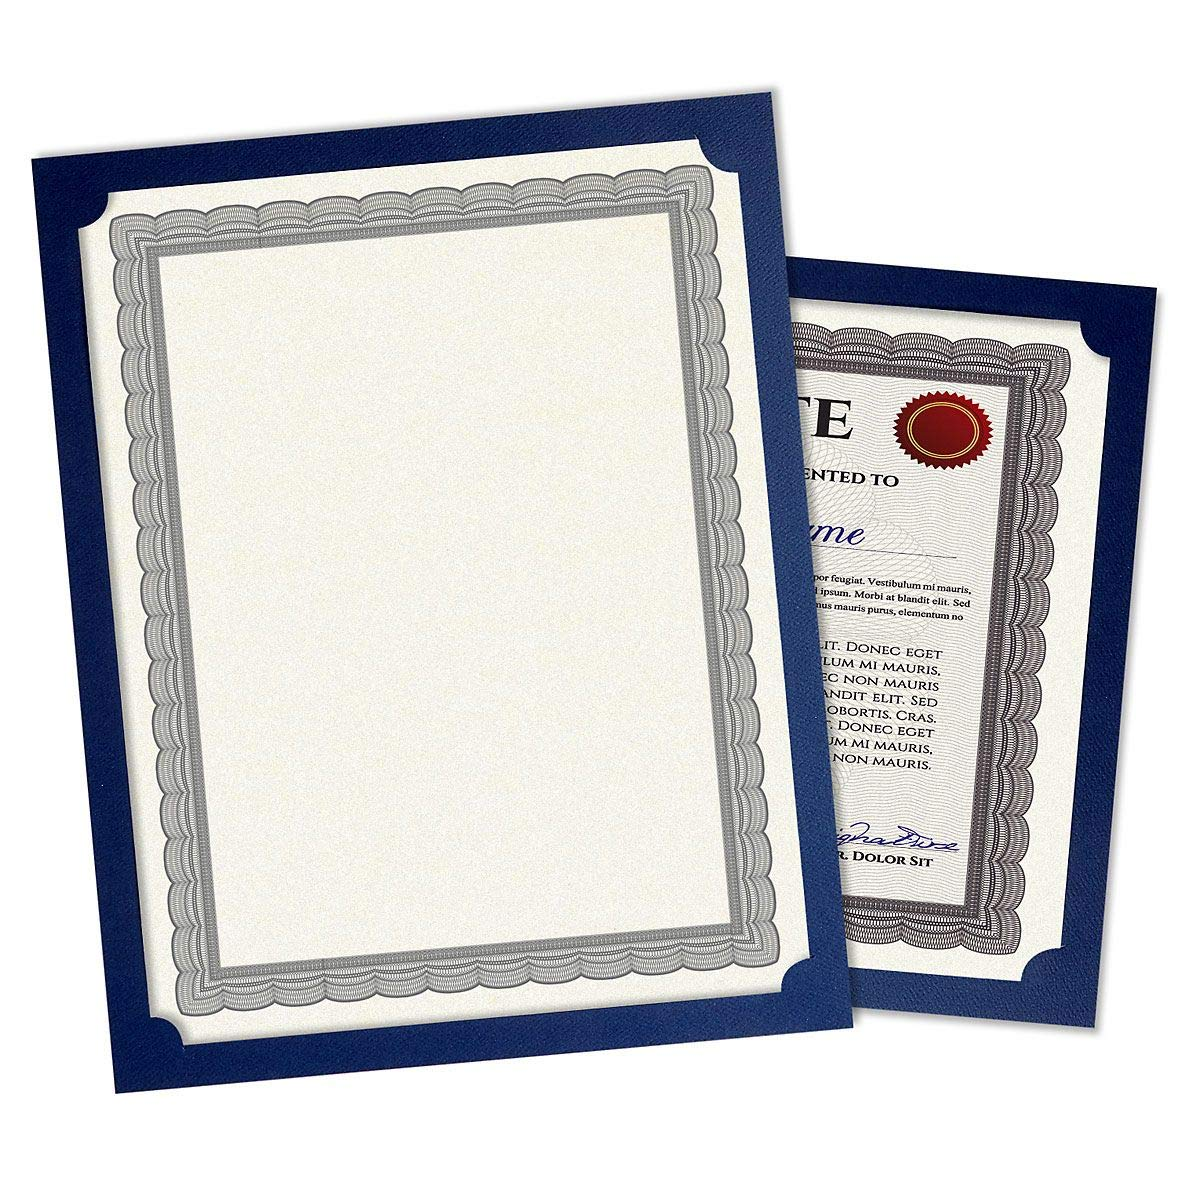 Plain Blue Certificate Holder - Set of 25, 9-1/2'' x 12'' Folded with Diecut Corners on 80 lb. Linen Cover Stock, Single Sided Holder, Diploma Holder, Letter Sized Awards by Fine Stationery